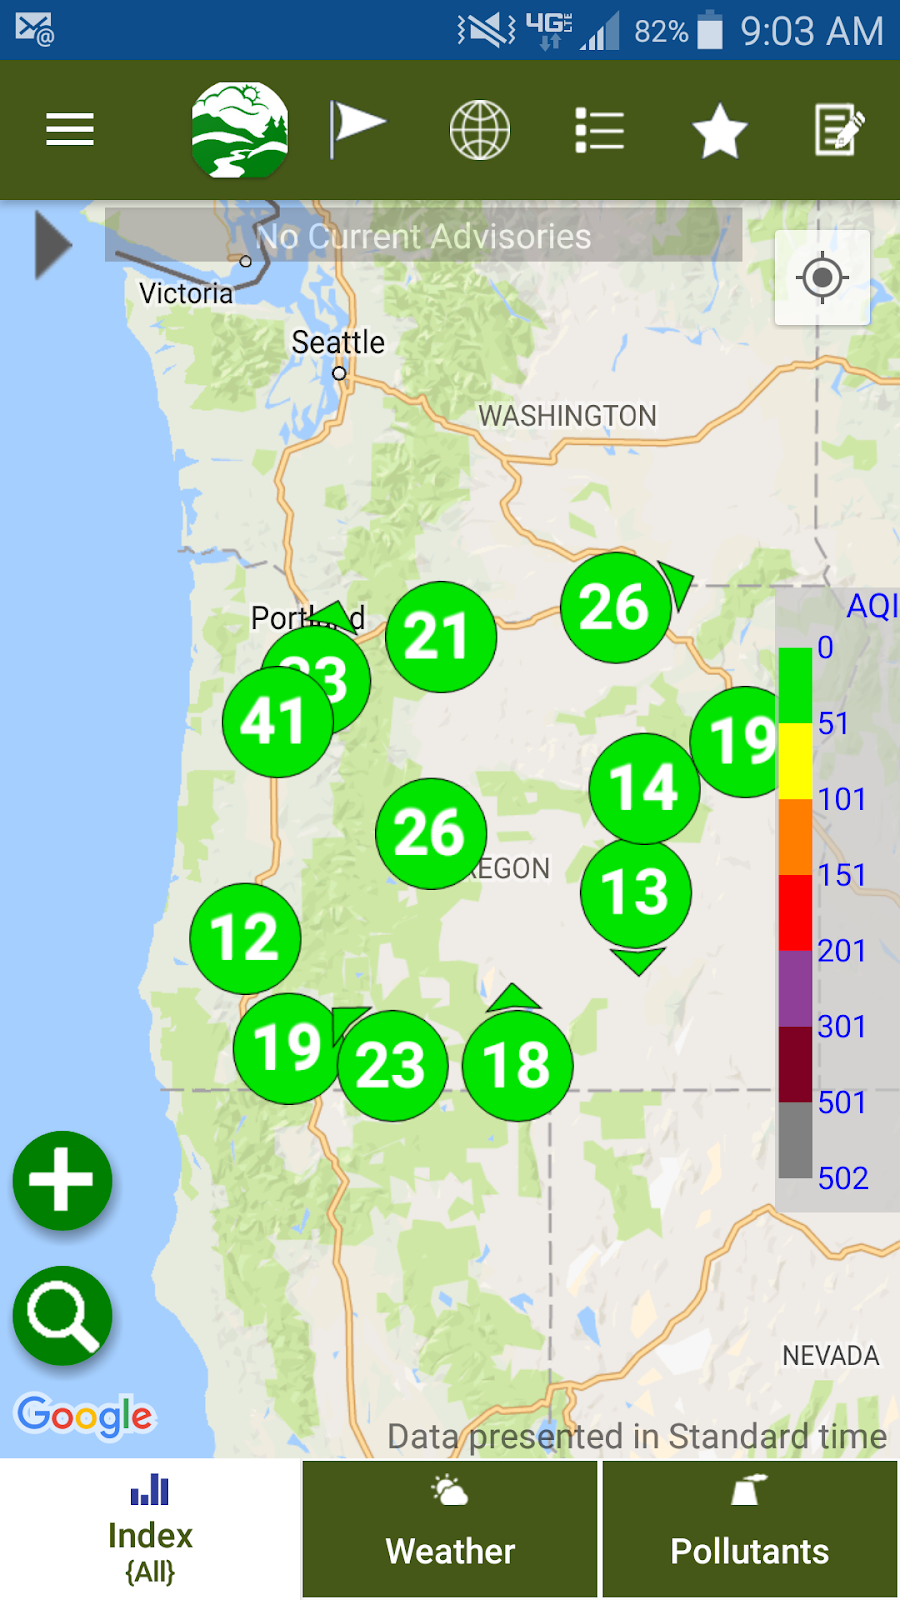 deq s air quality index is also on your smart phone just search for oregonair in your app store the vendor is envitech so you will see their name too